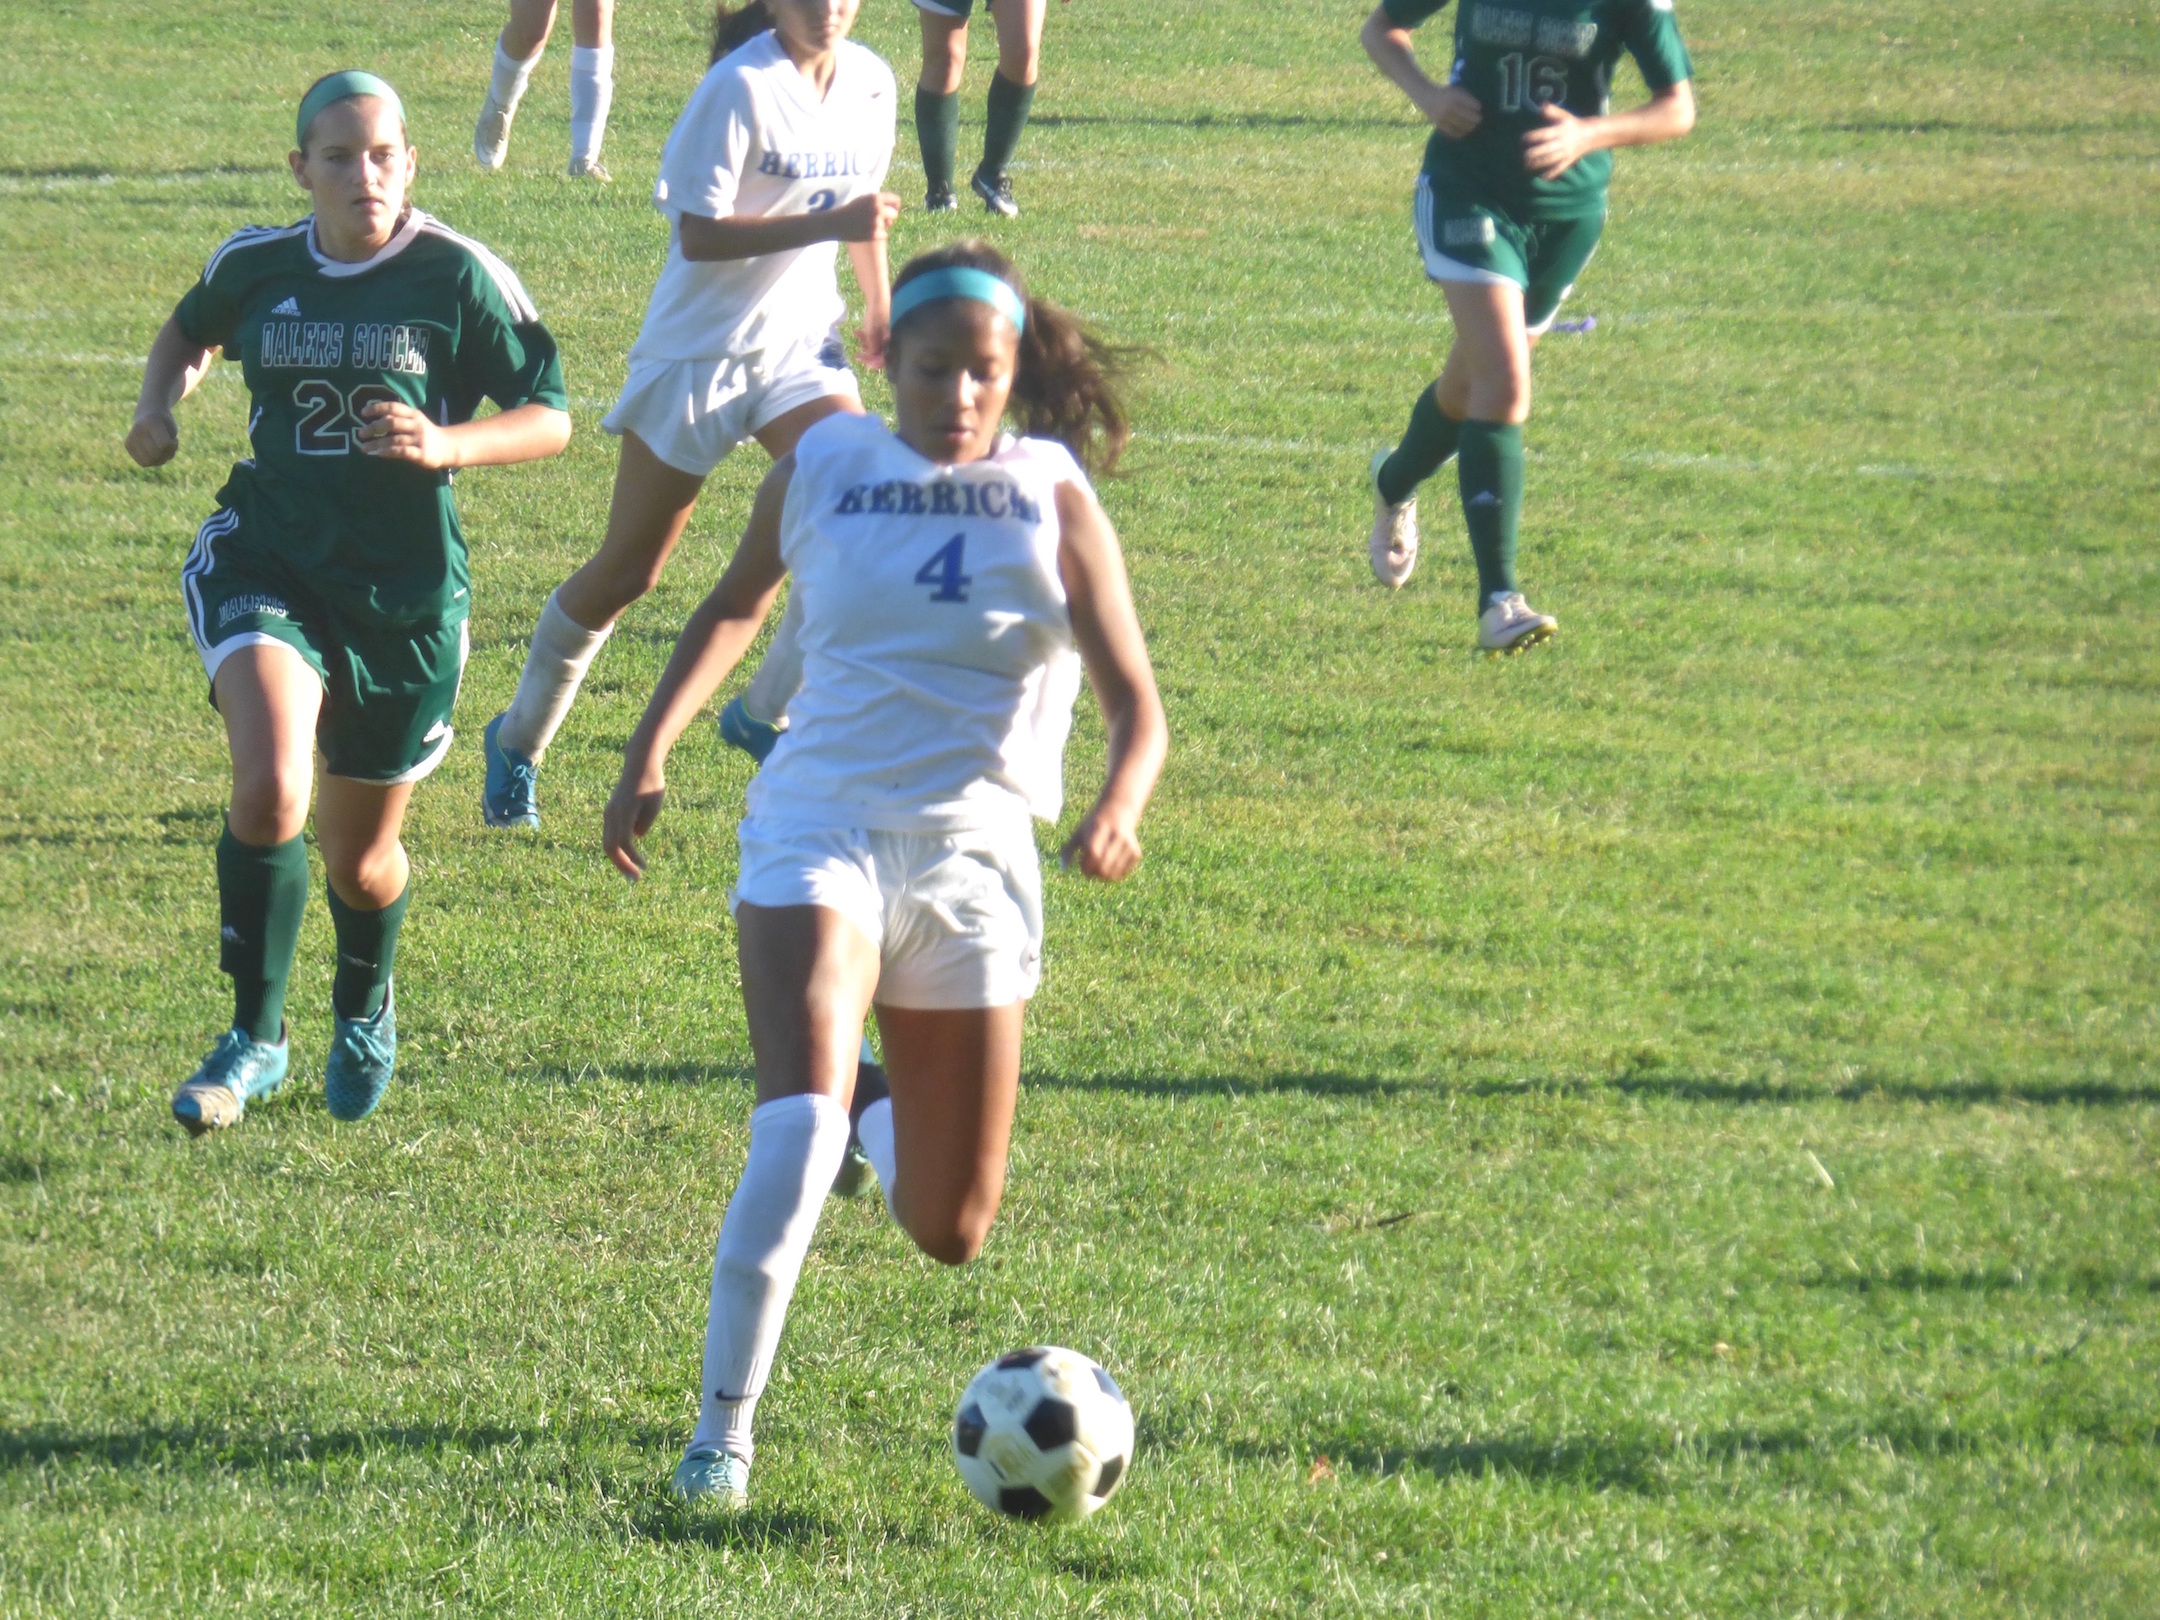 Caitlin Cosme's soccer leadership takes her to college stage